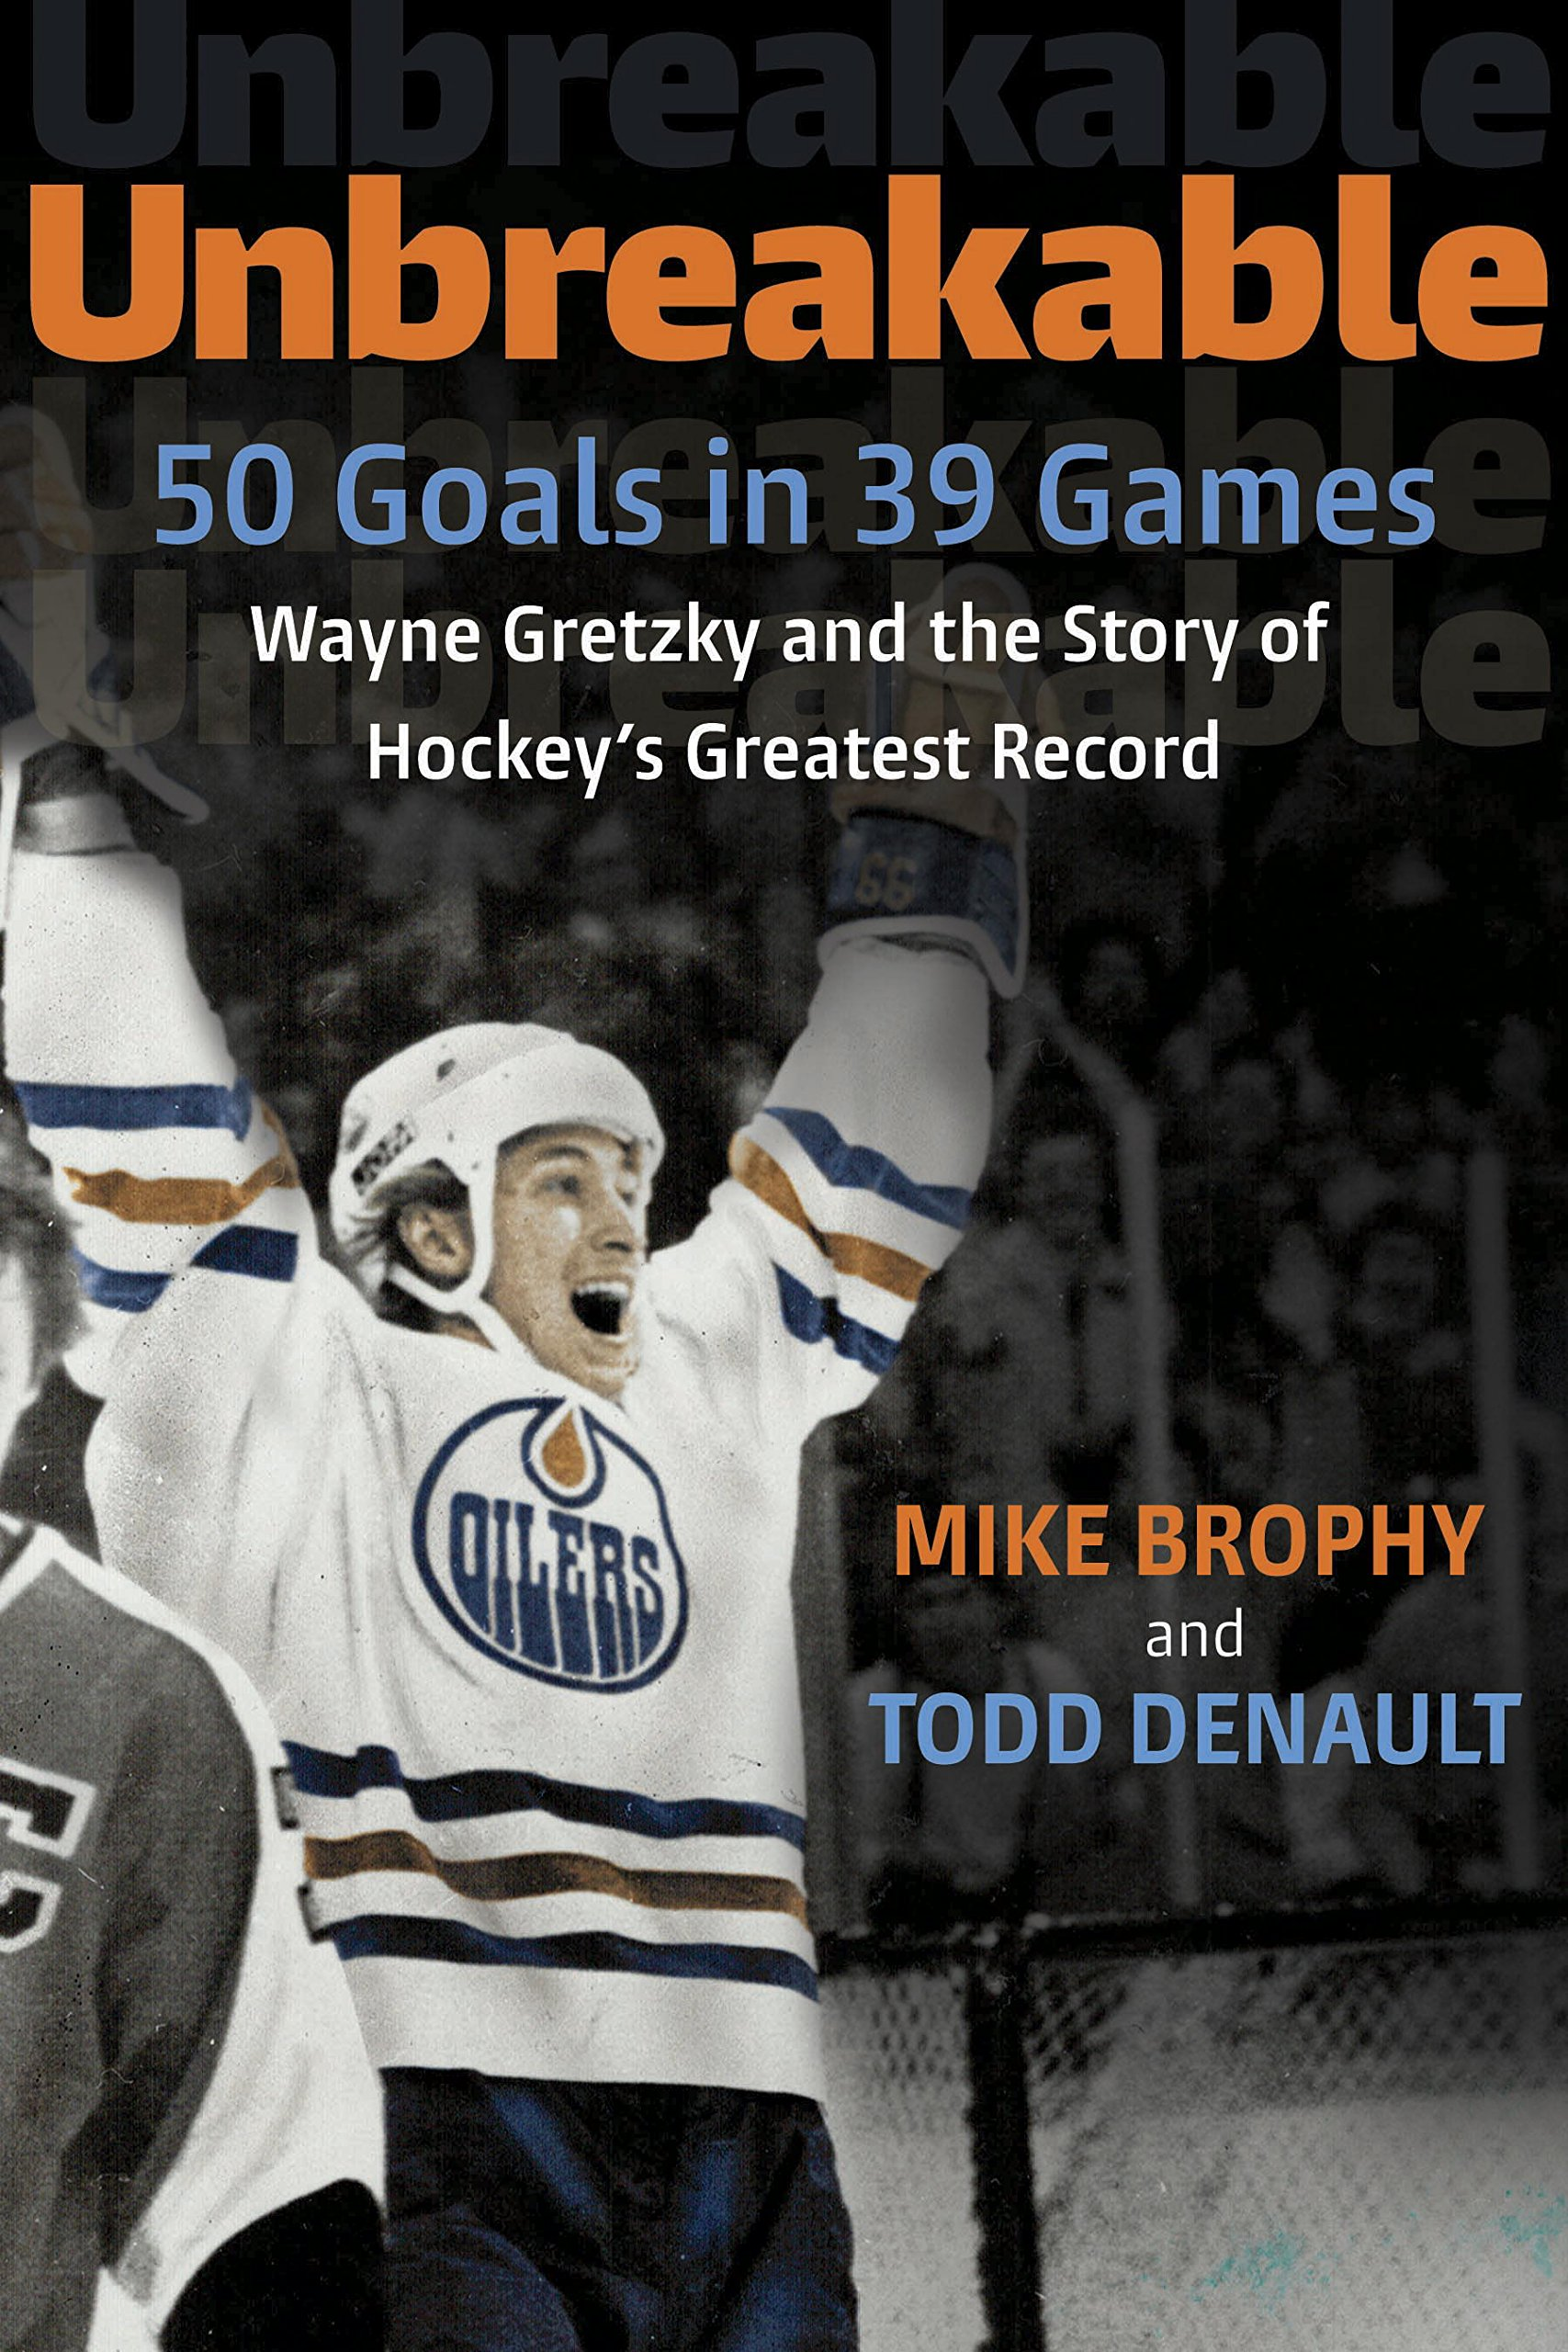 Download Unbreakable: 50 Goals in 39 Games: Wayne Gretzky and the Story of Hockey's Greatest Record (English Edition)